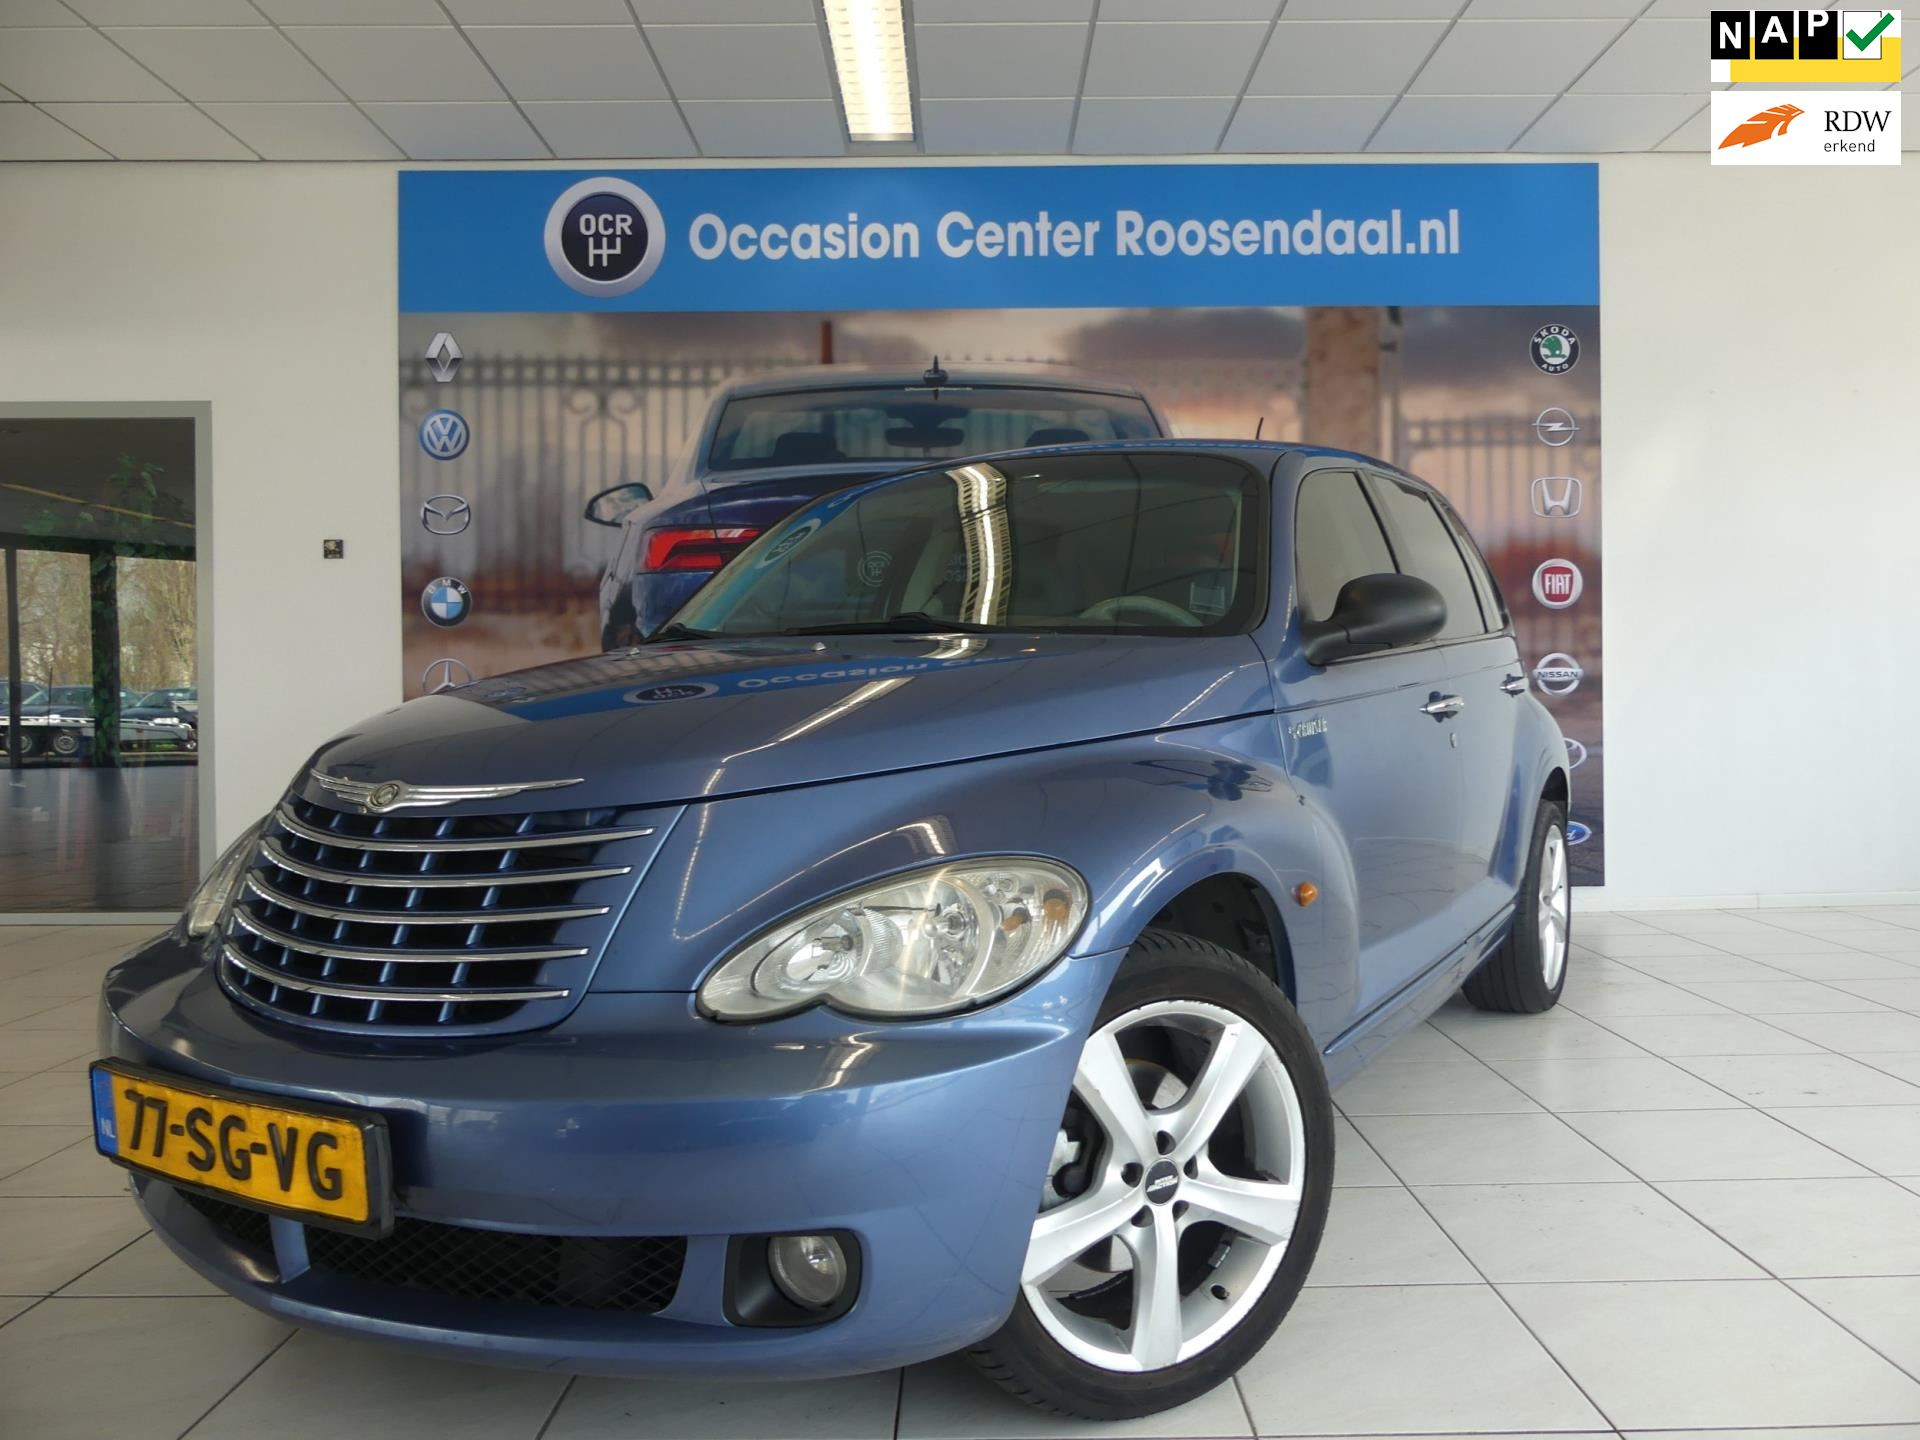 Chrysler PT Cruiser occasion - Occasion Center Roosendaal